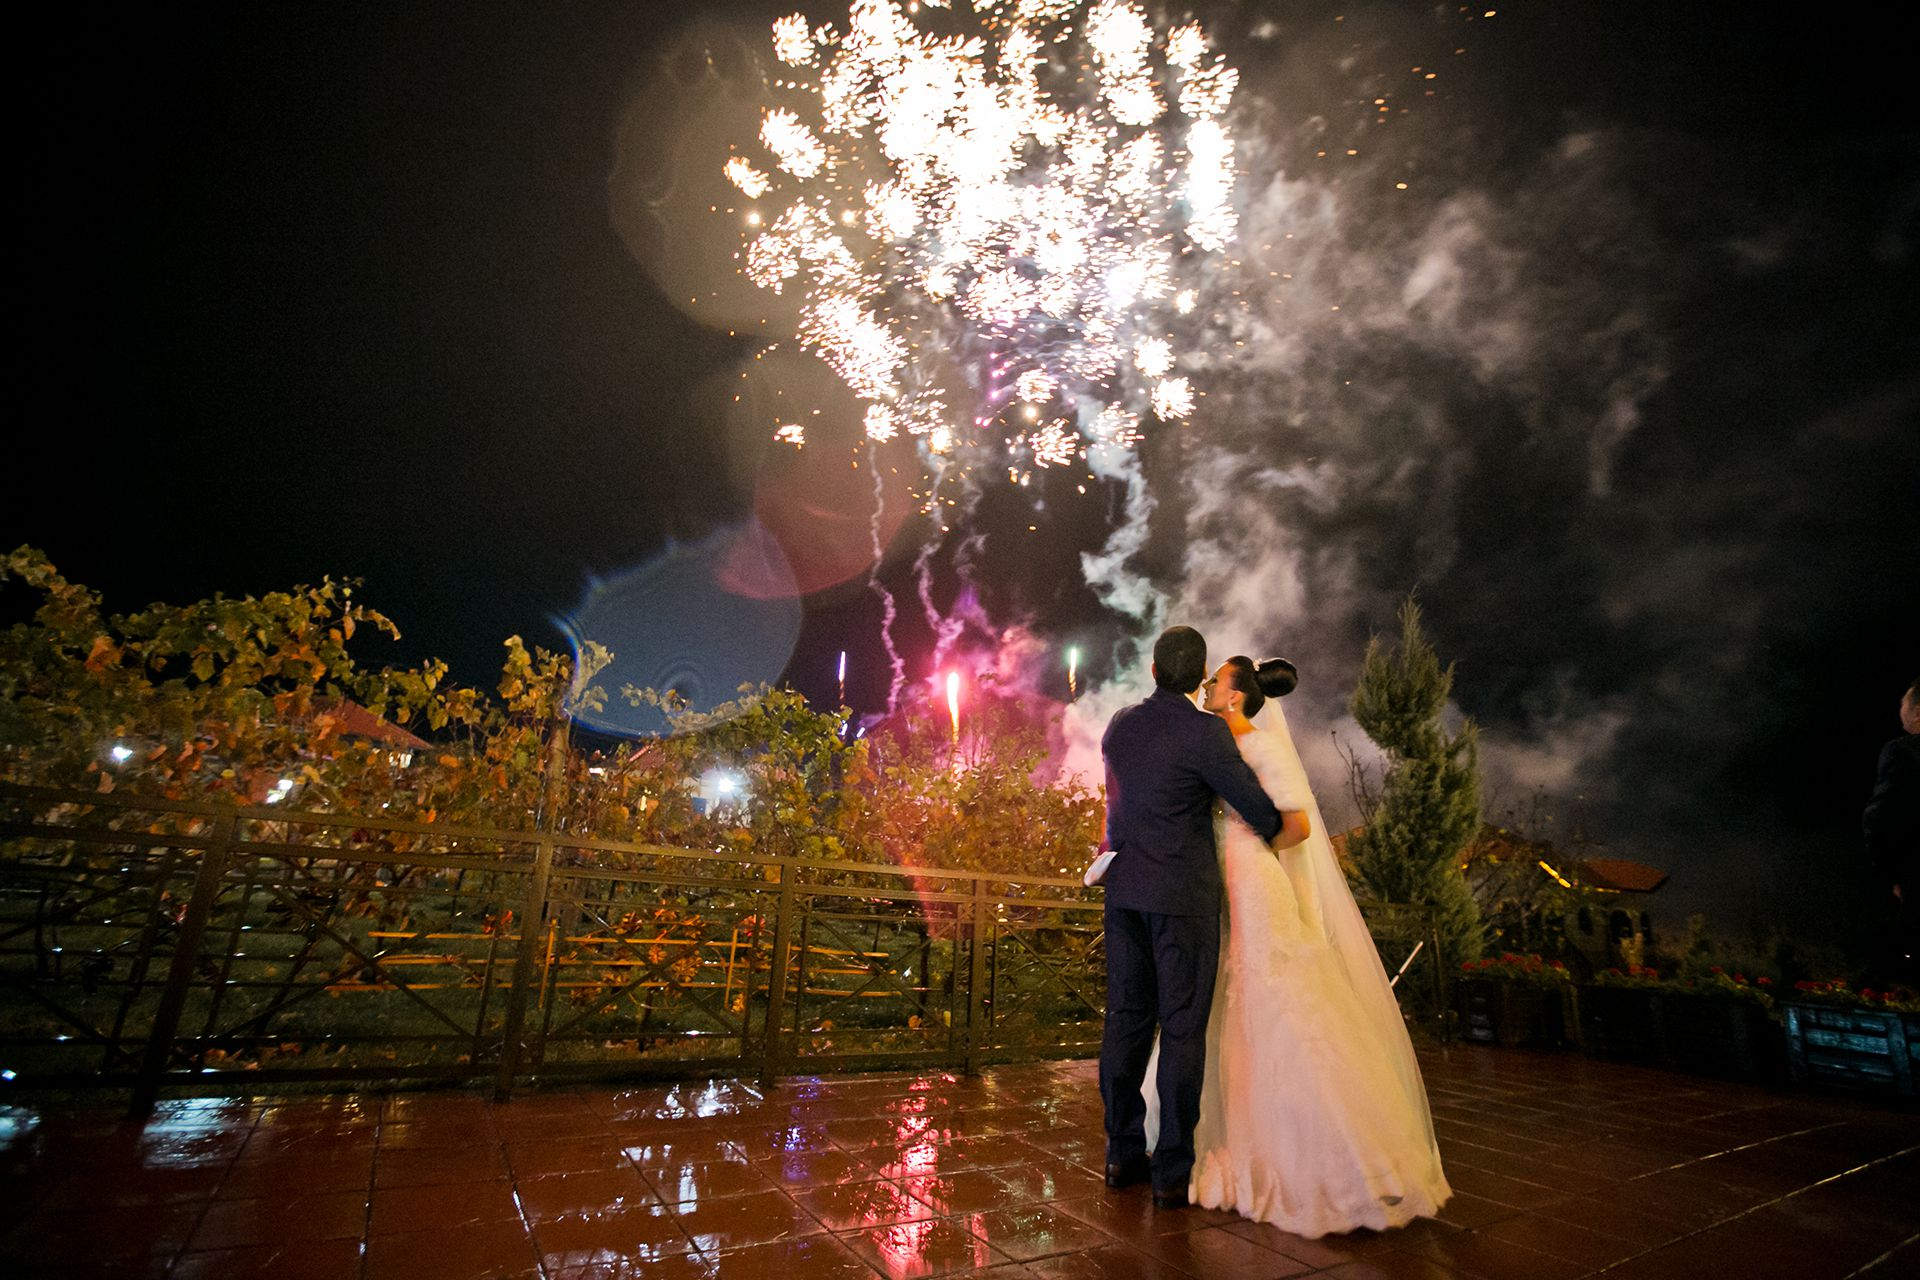 Matrimonio con Fuochi d'artificio